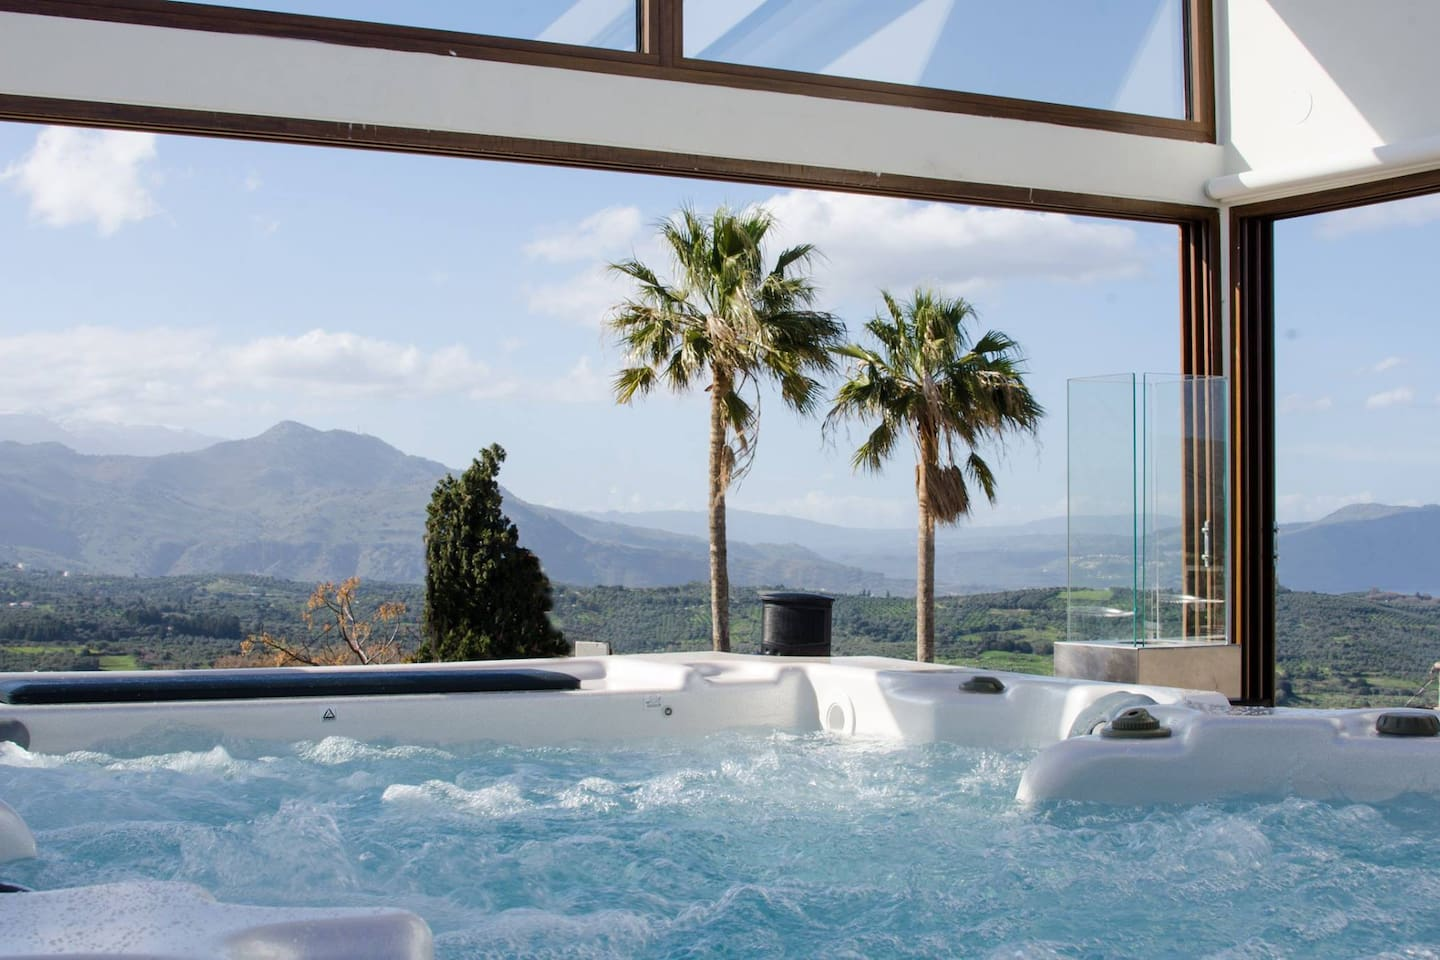 100 m2 roof terrace with jacuzzi.